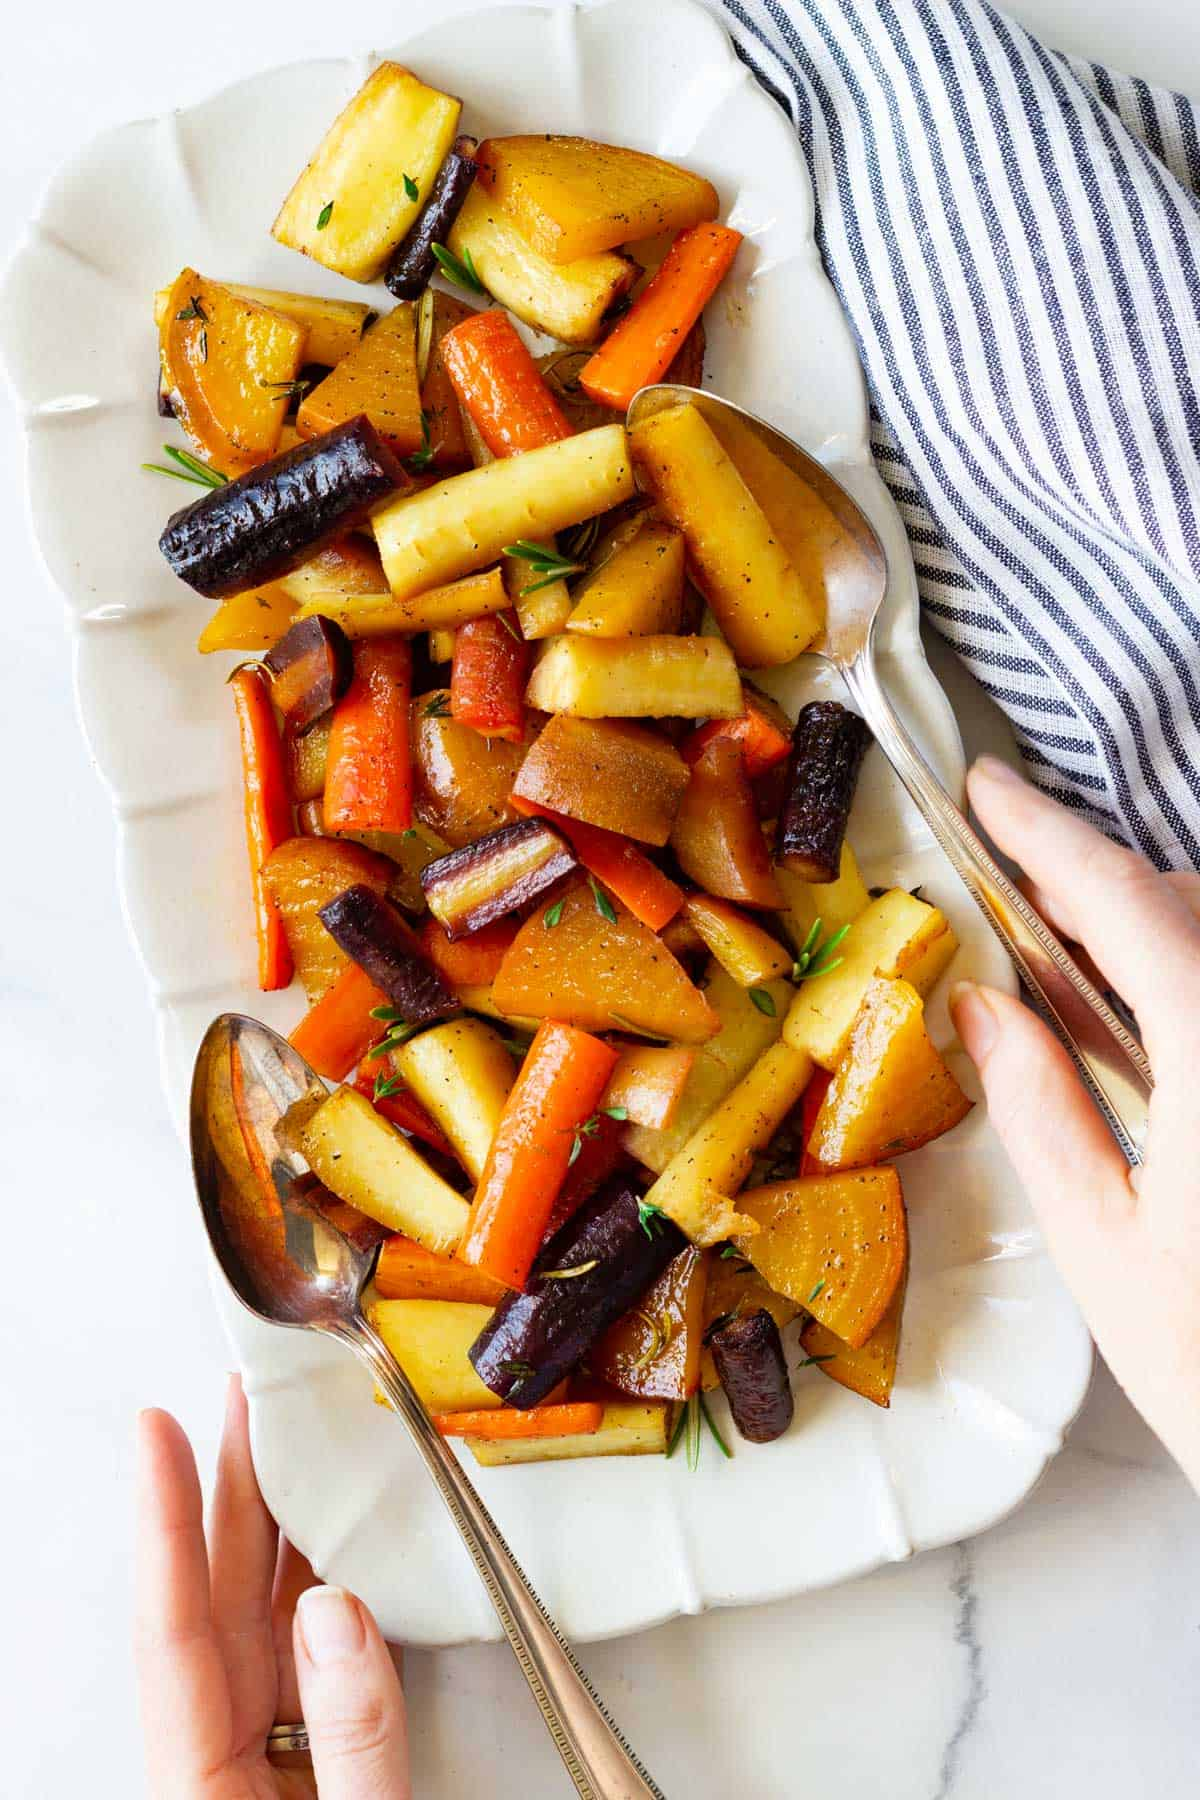 Two hands reach for serving utensils to serve veggies on a platter.